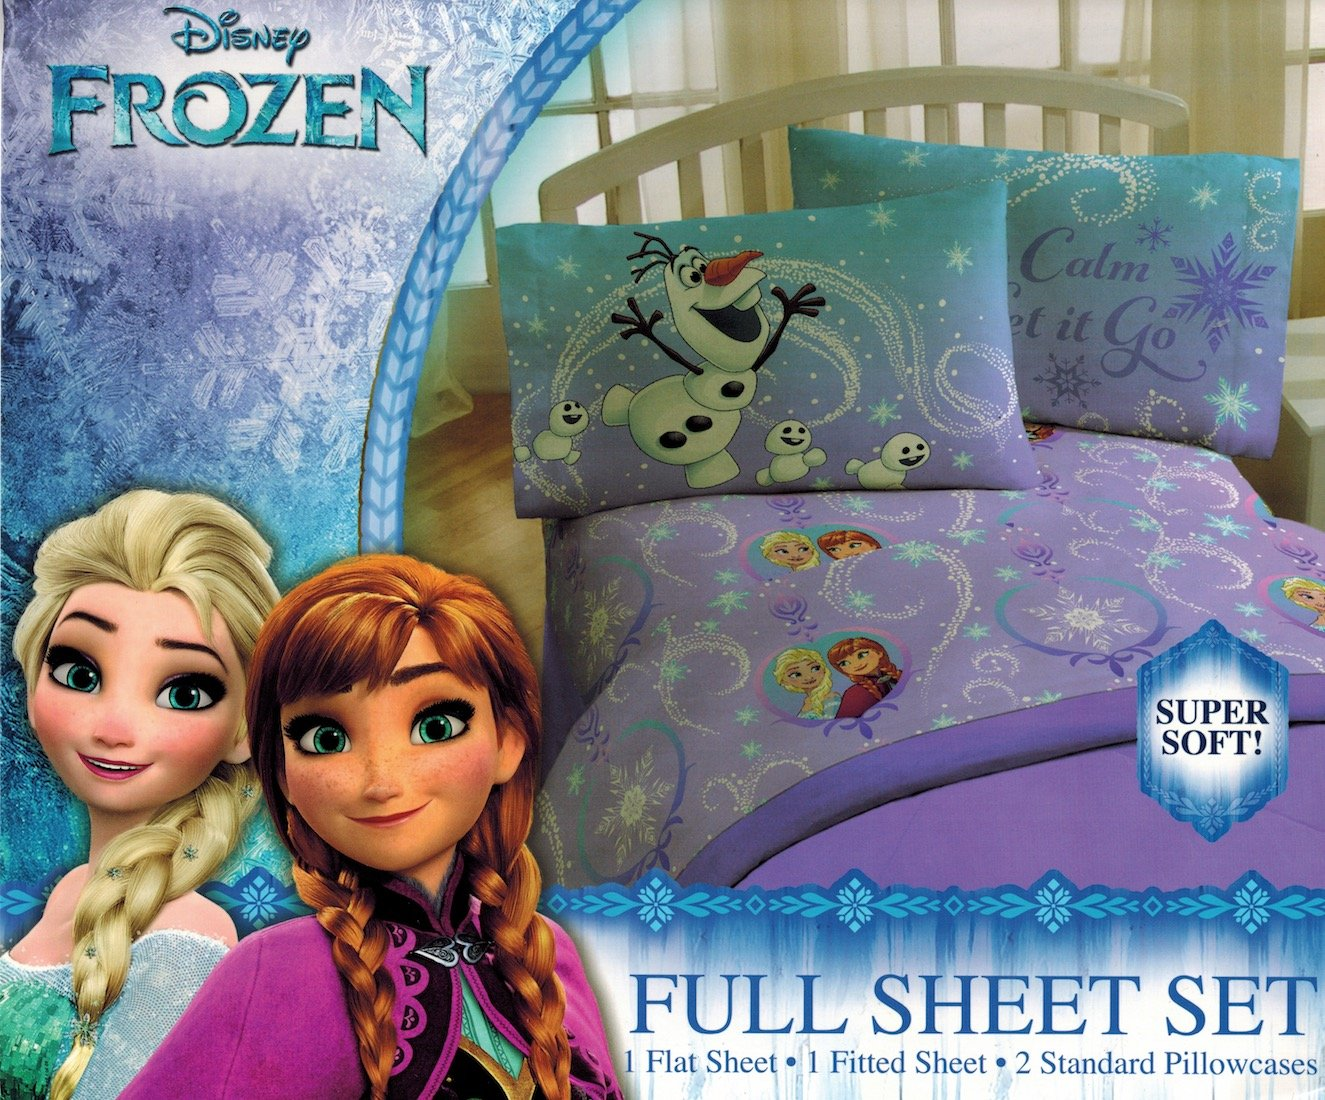 Disney Frozen 'Northern Lights' Sheet Set - Anna and Elsa, Keep Calm and Let it Go - Soft and Comfortable Microfiber Sheets (Full) Jay Franco